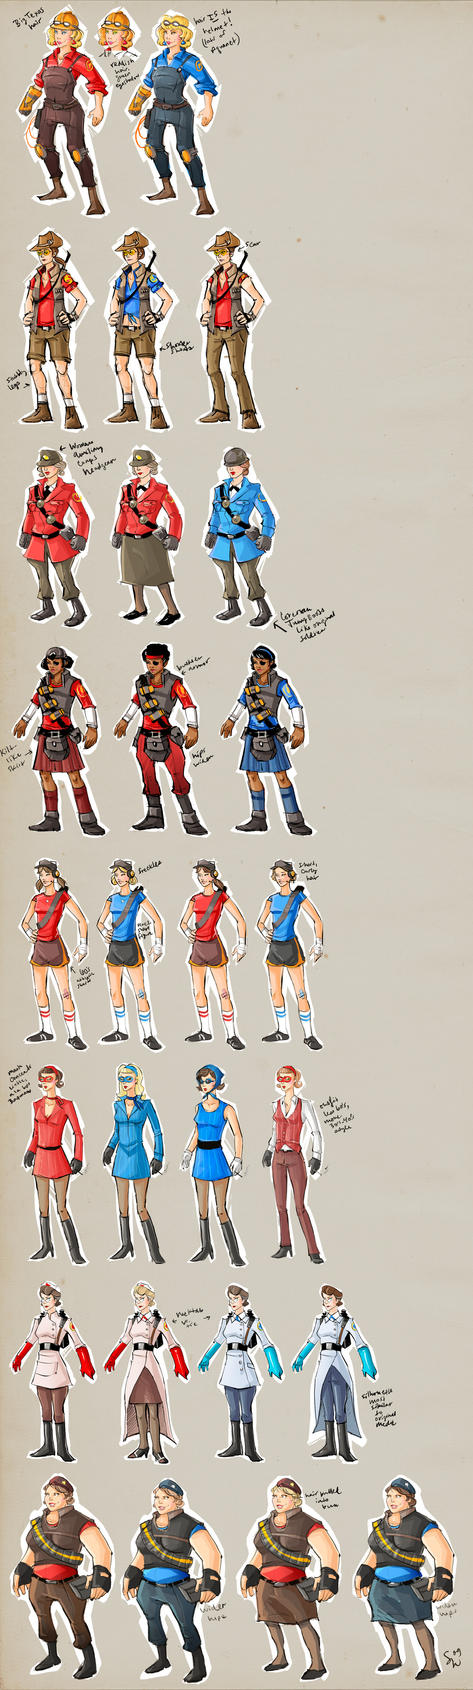 TF2 female designs v.2 by ChemicalAlia